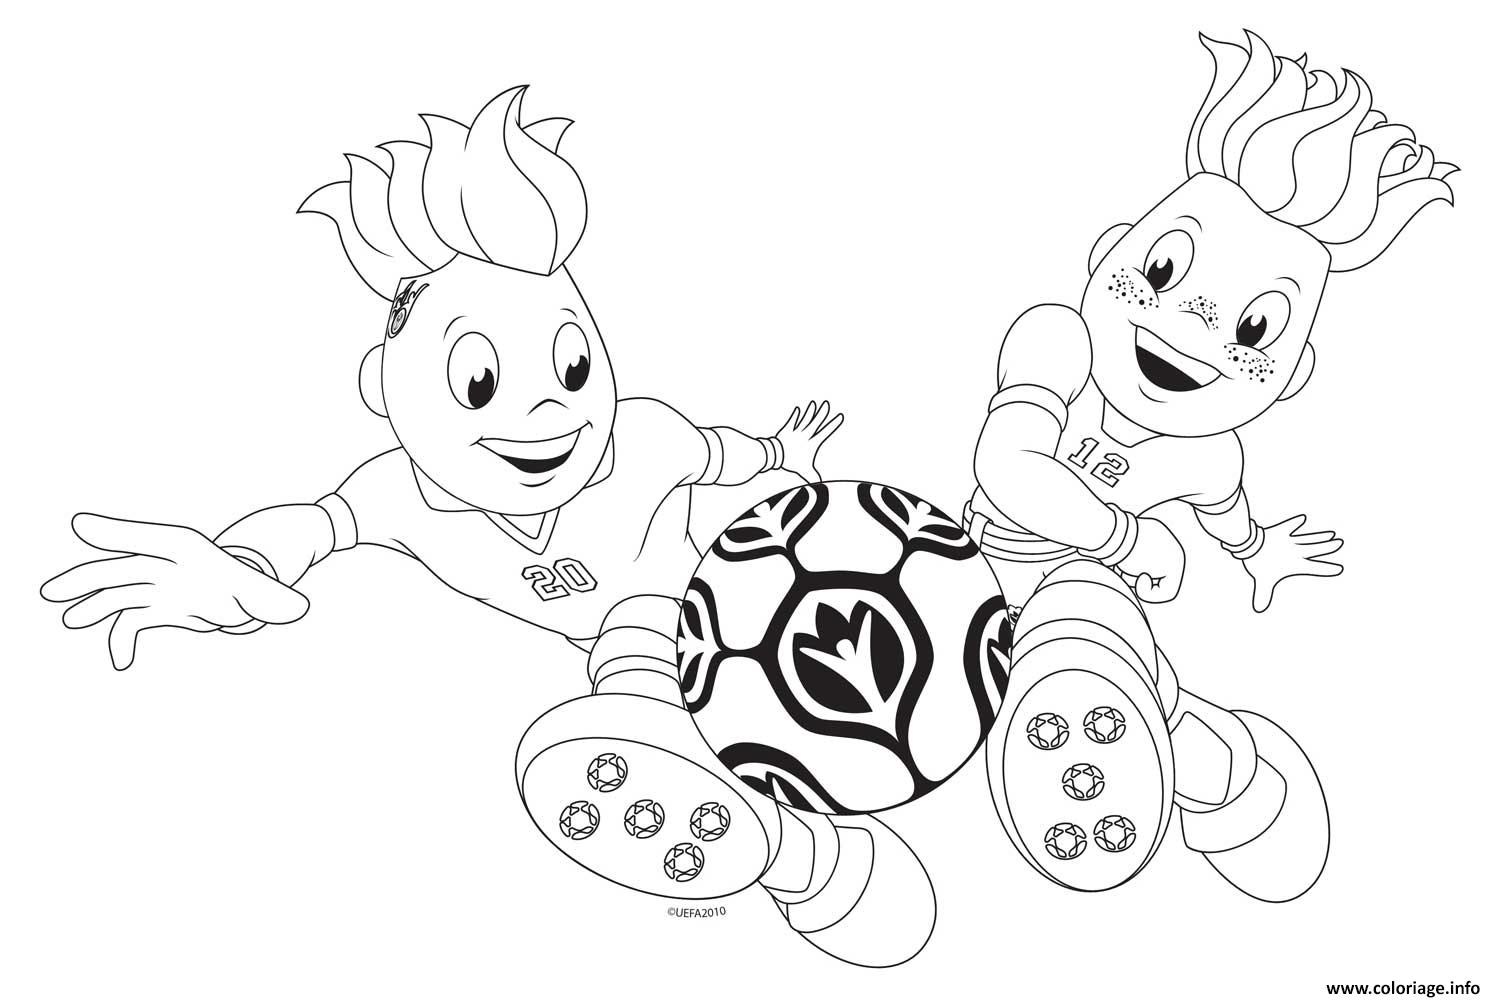 Coloriage euro 2016 foot dessin - Coloriage de foot ...